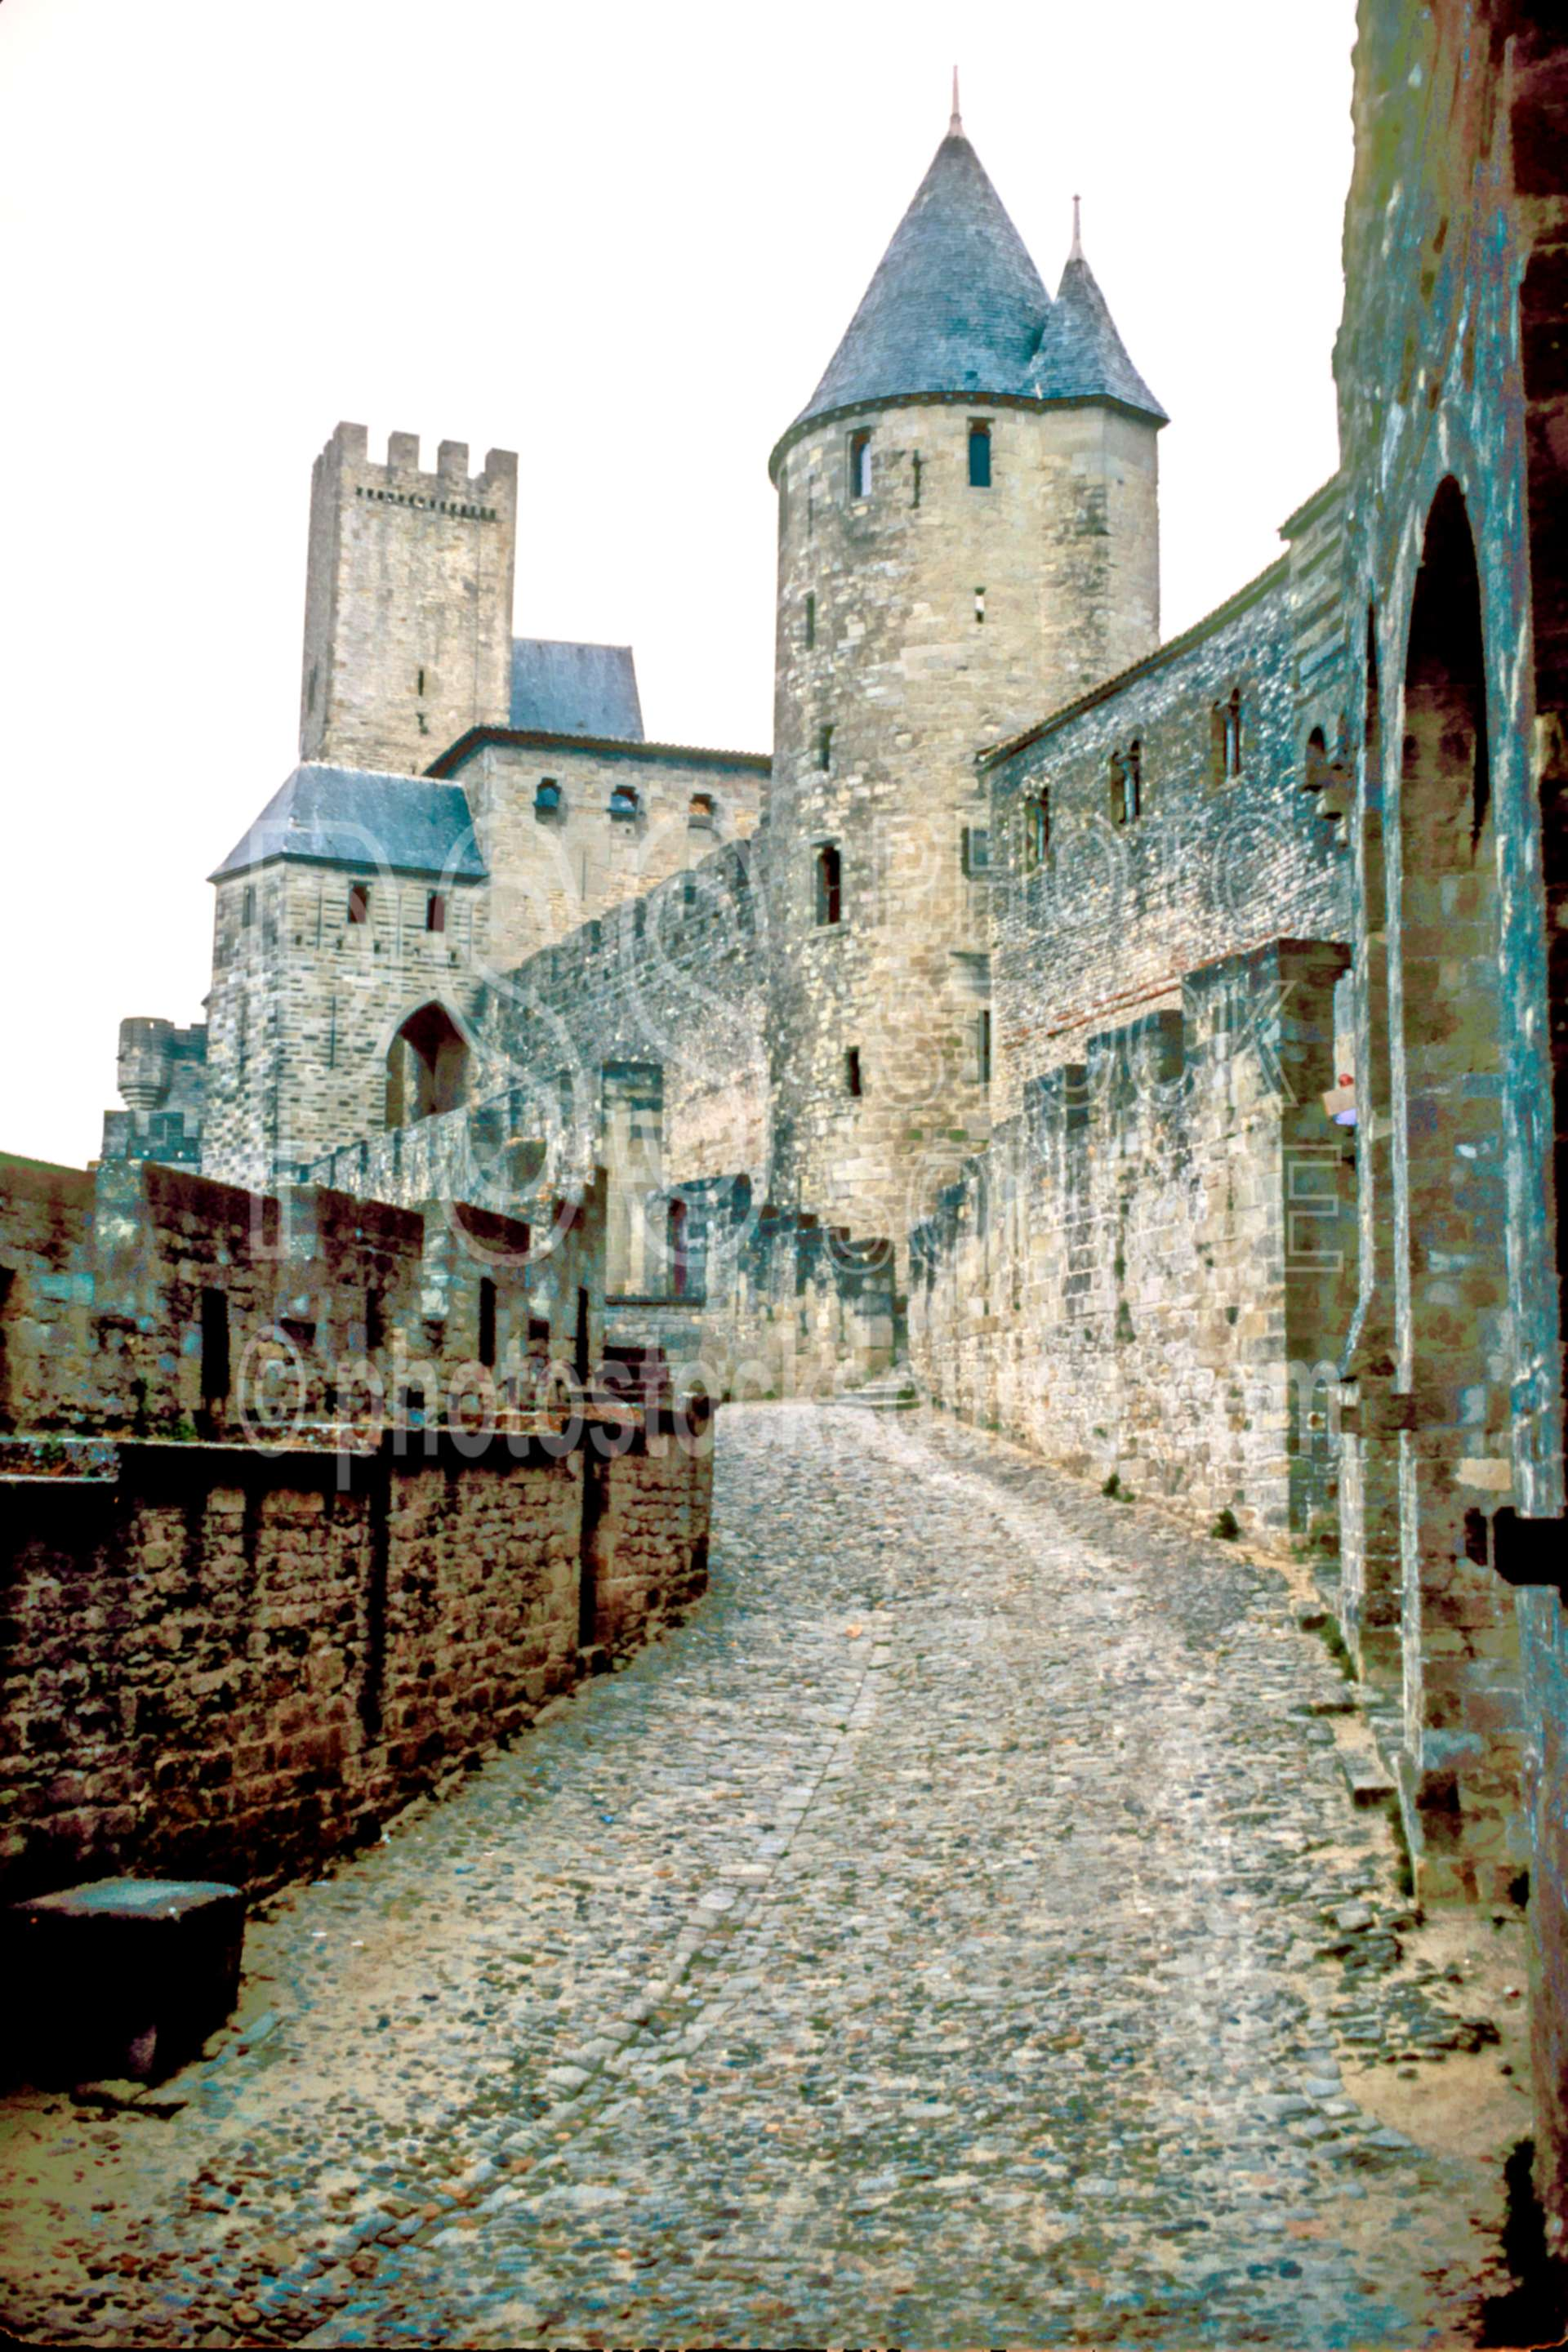 Walled City,castle,europe,medieval,road,wall,france castles